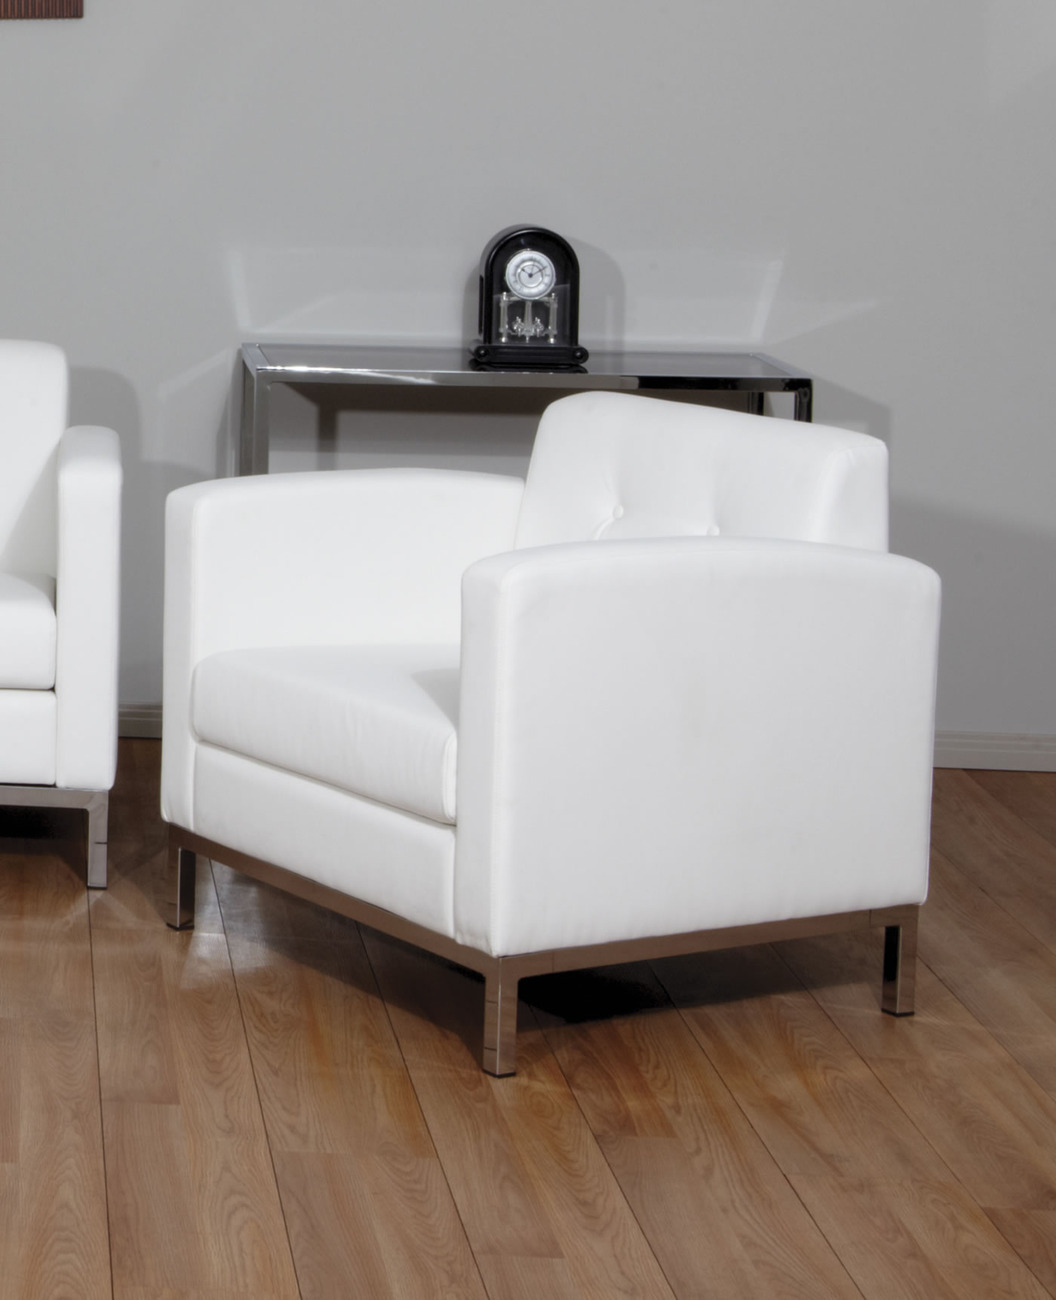 Primary image for Wall Street Avenue Six White Faux Leather Arm Chair w/Chrome Finish Legs WST51A